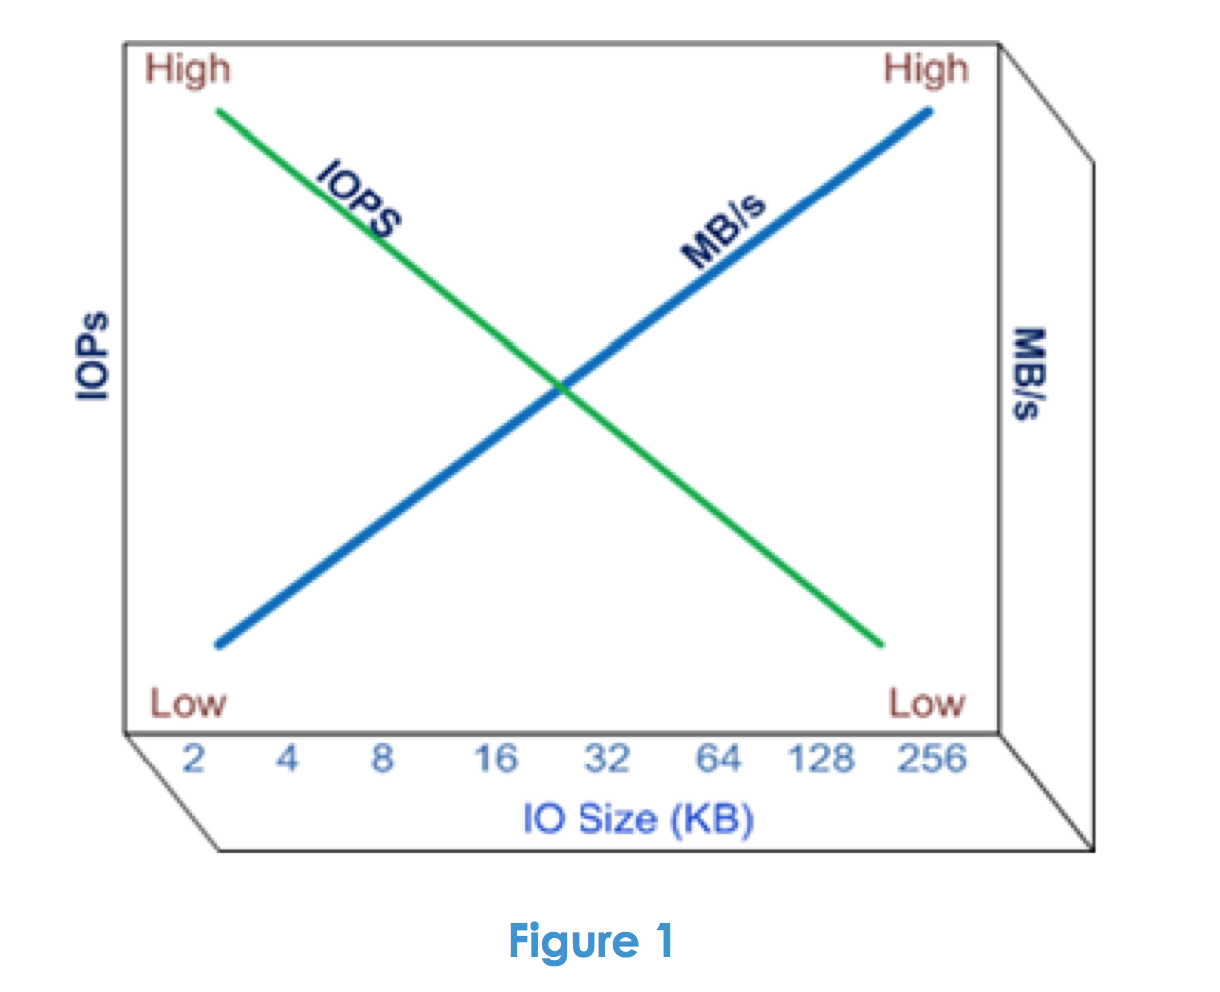 Awesome read: Storage Performance And Testing Best Practices